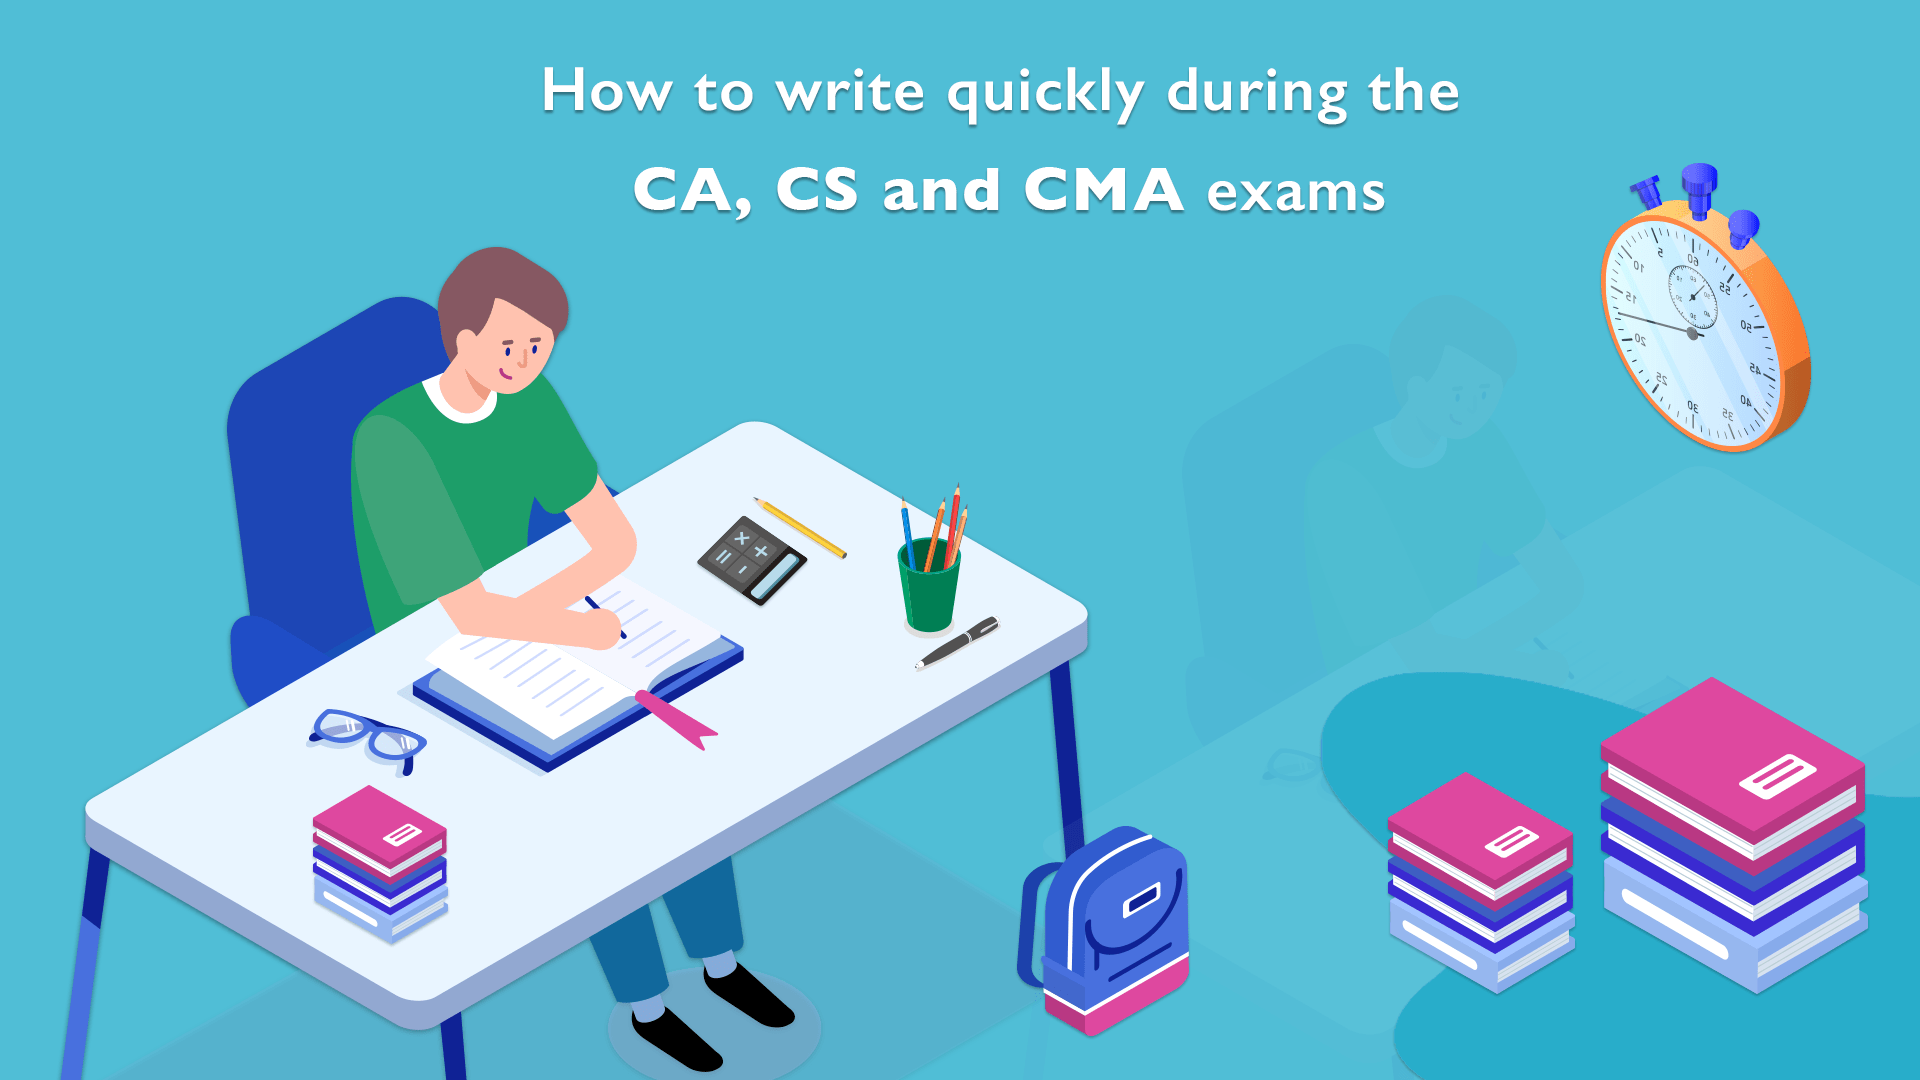 How to write quickly during the CA, CS and CMA exams